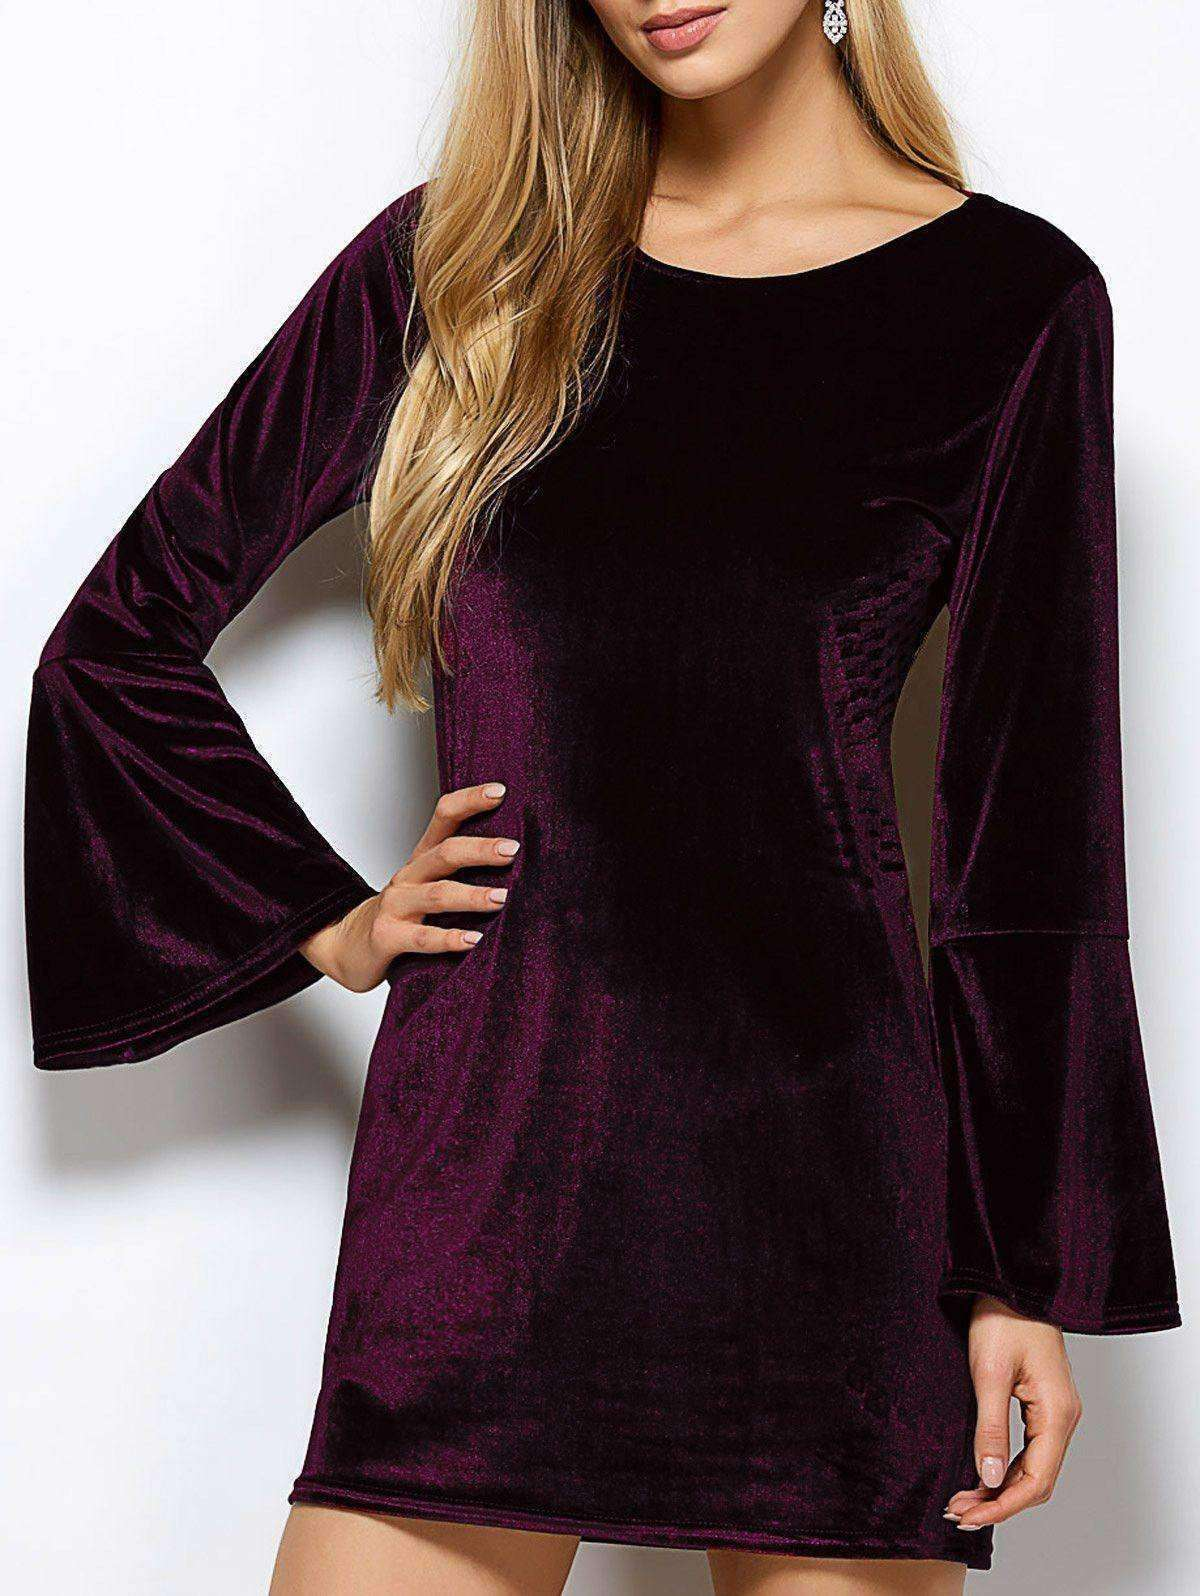 Women's Cut Out Velvet Dress - The Timeless Store